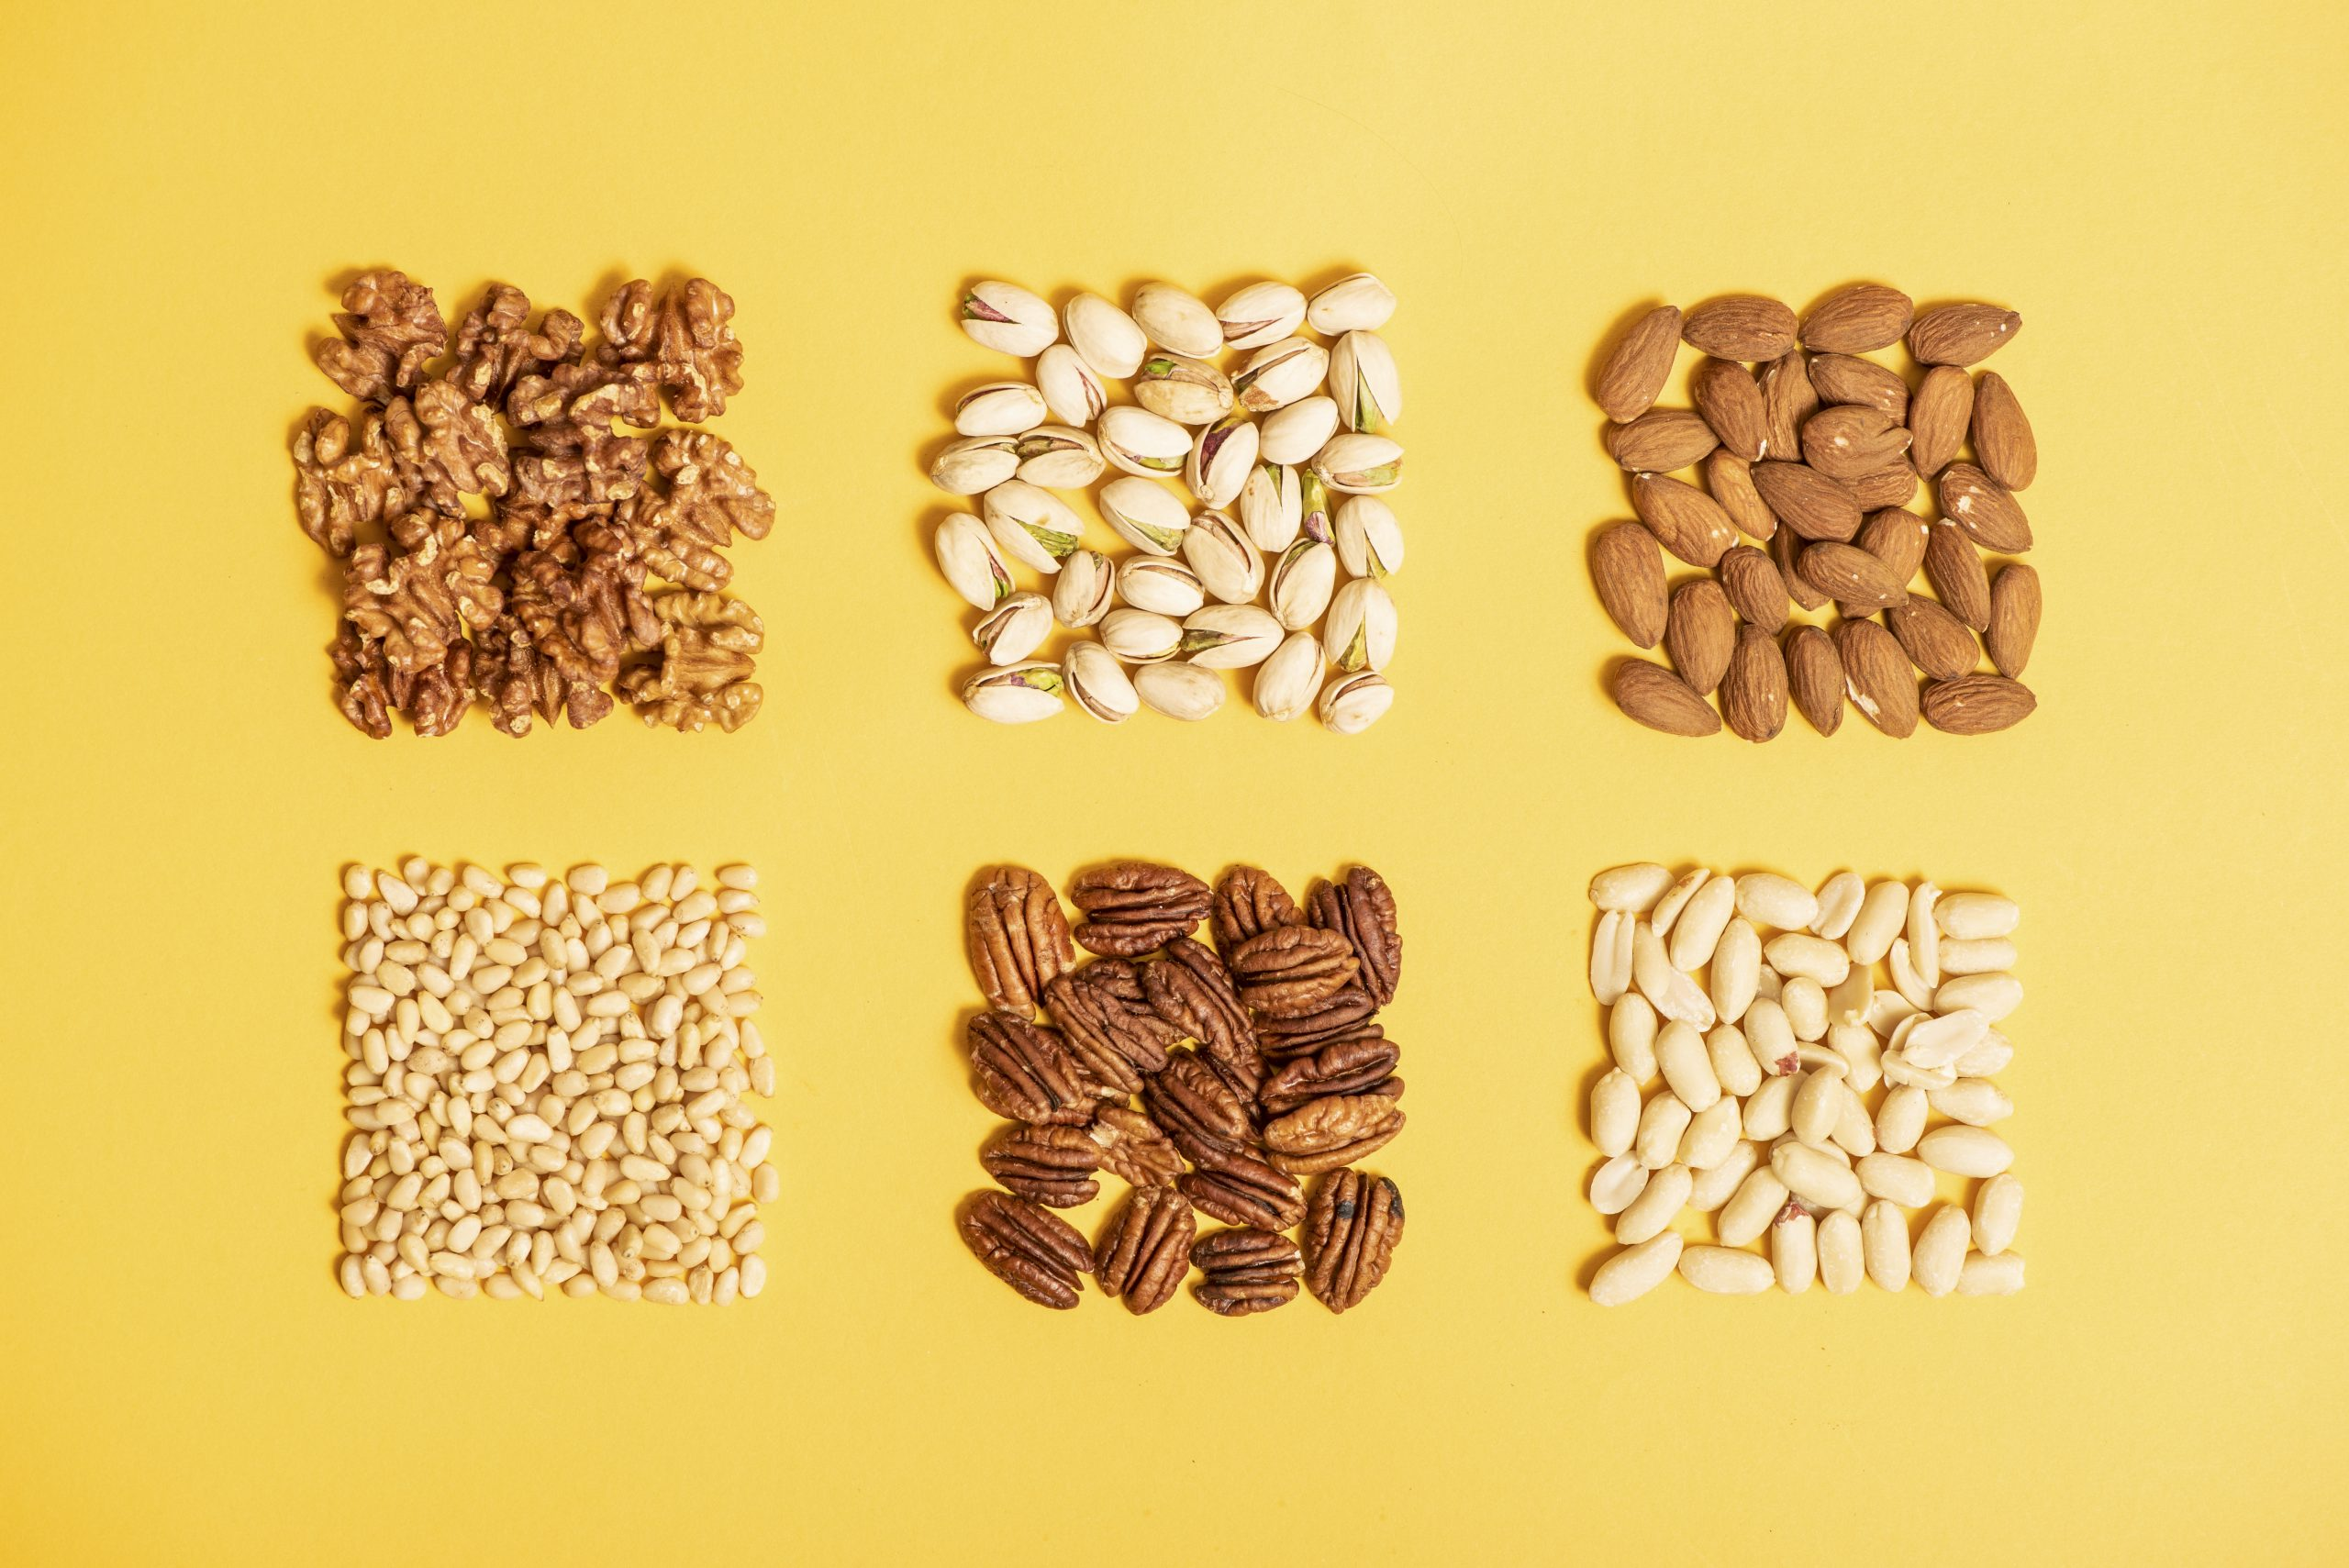 Eating nuts could bring a host of health benefits